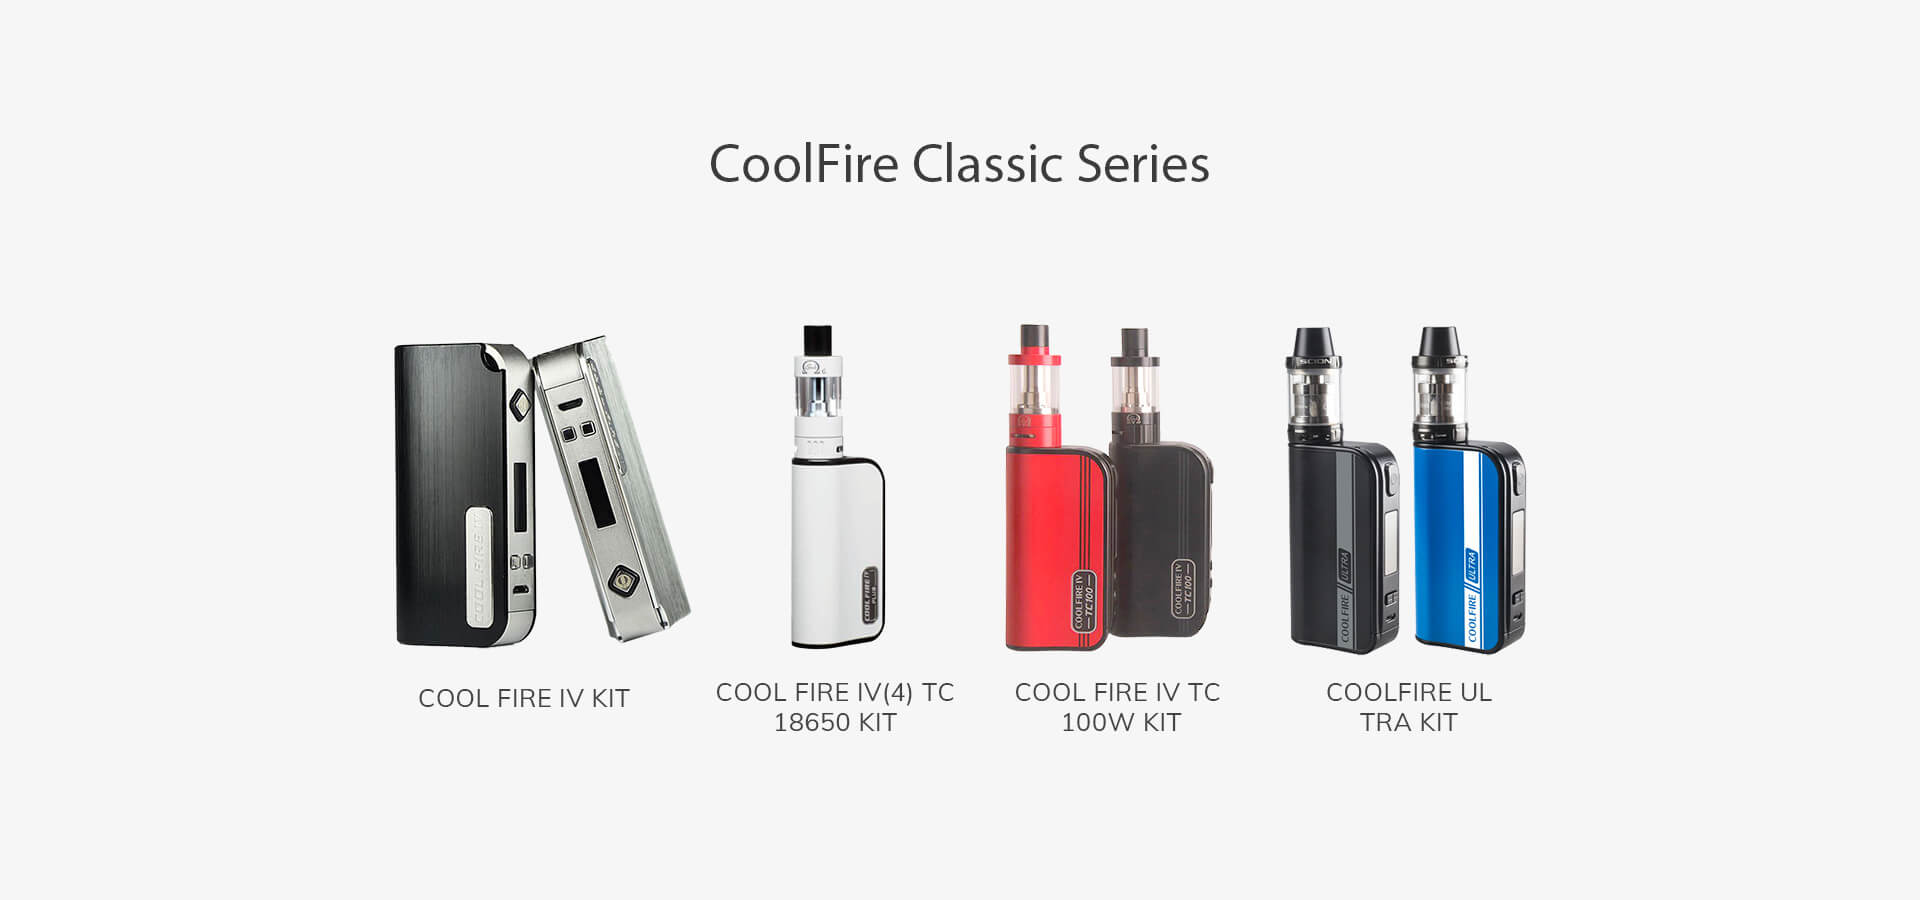 Cool Fire Classic Series